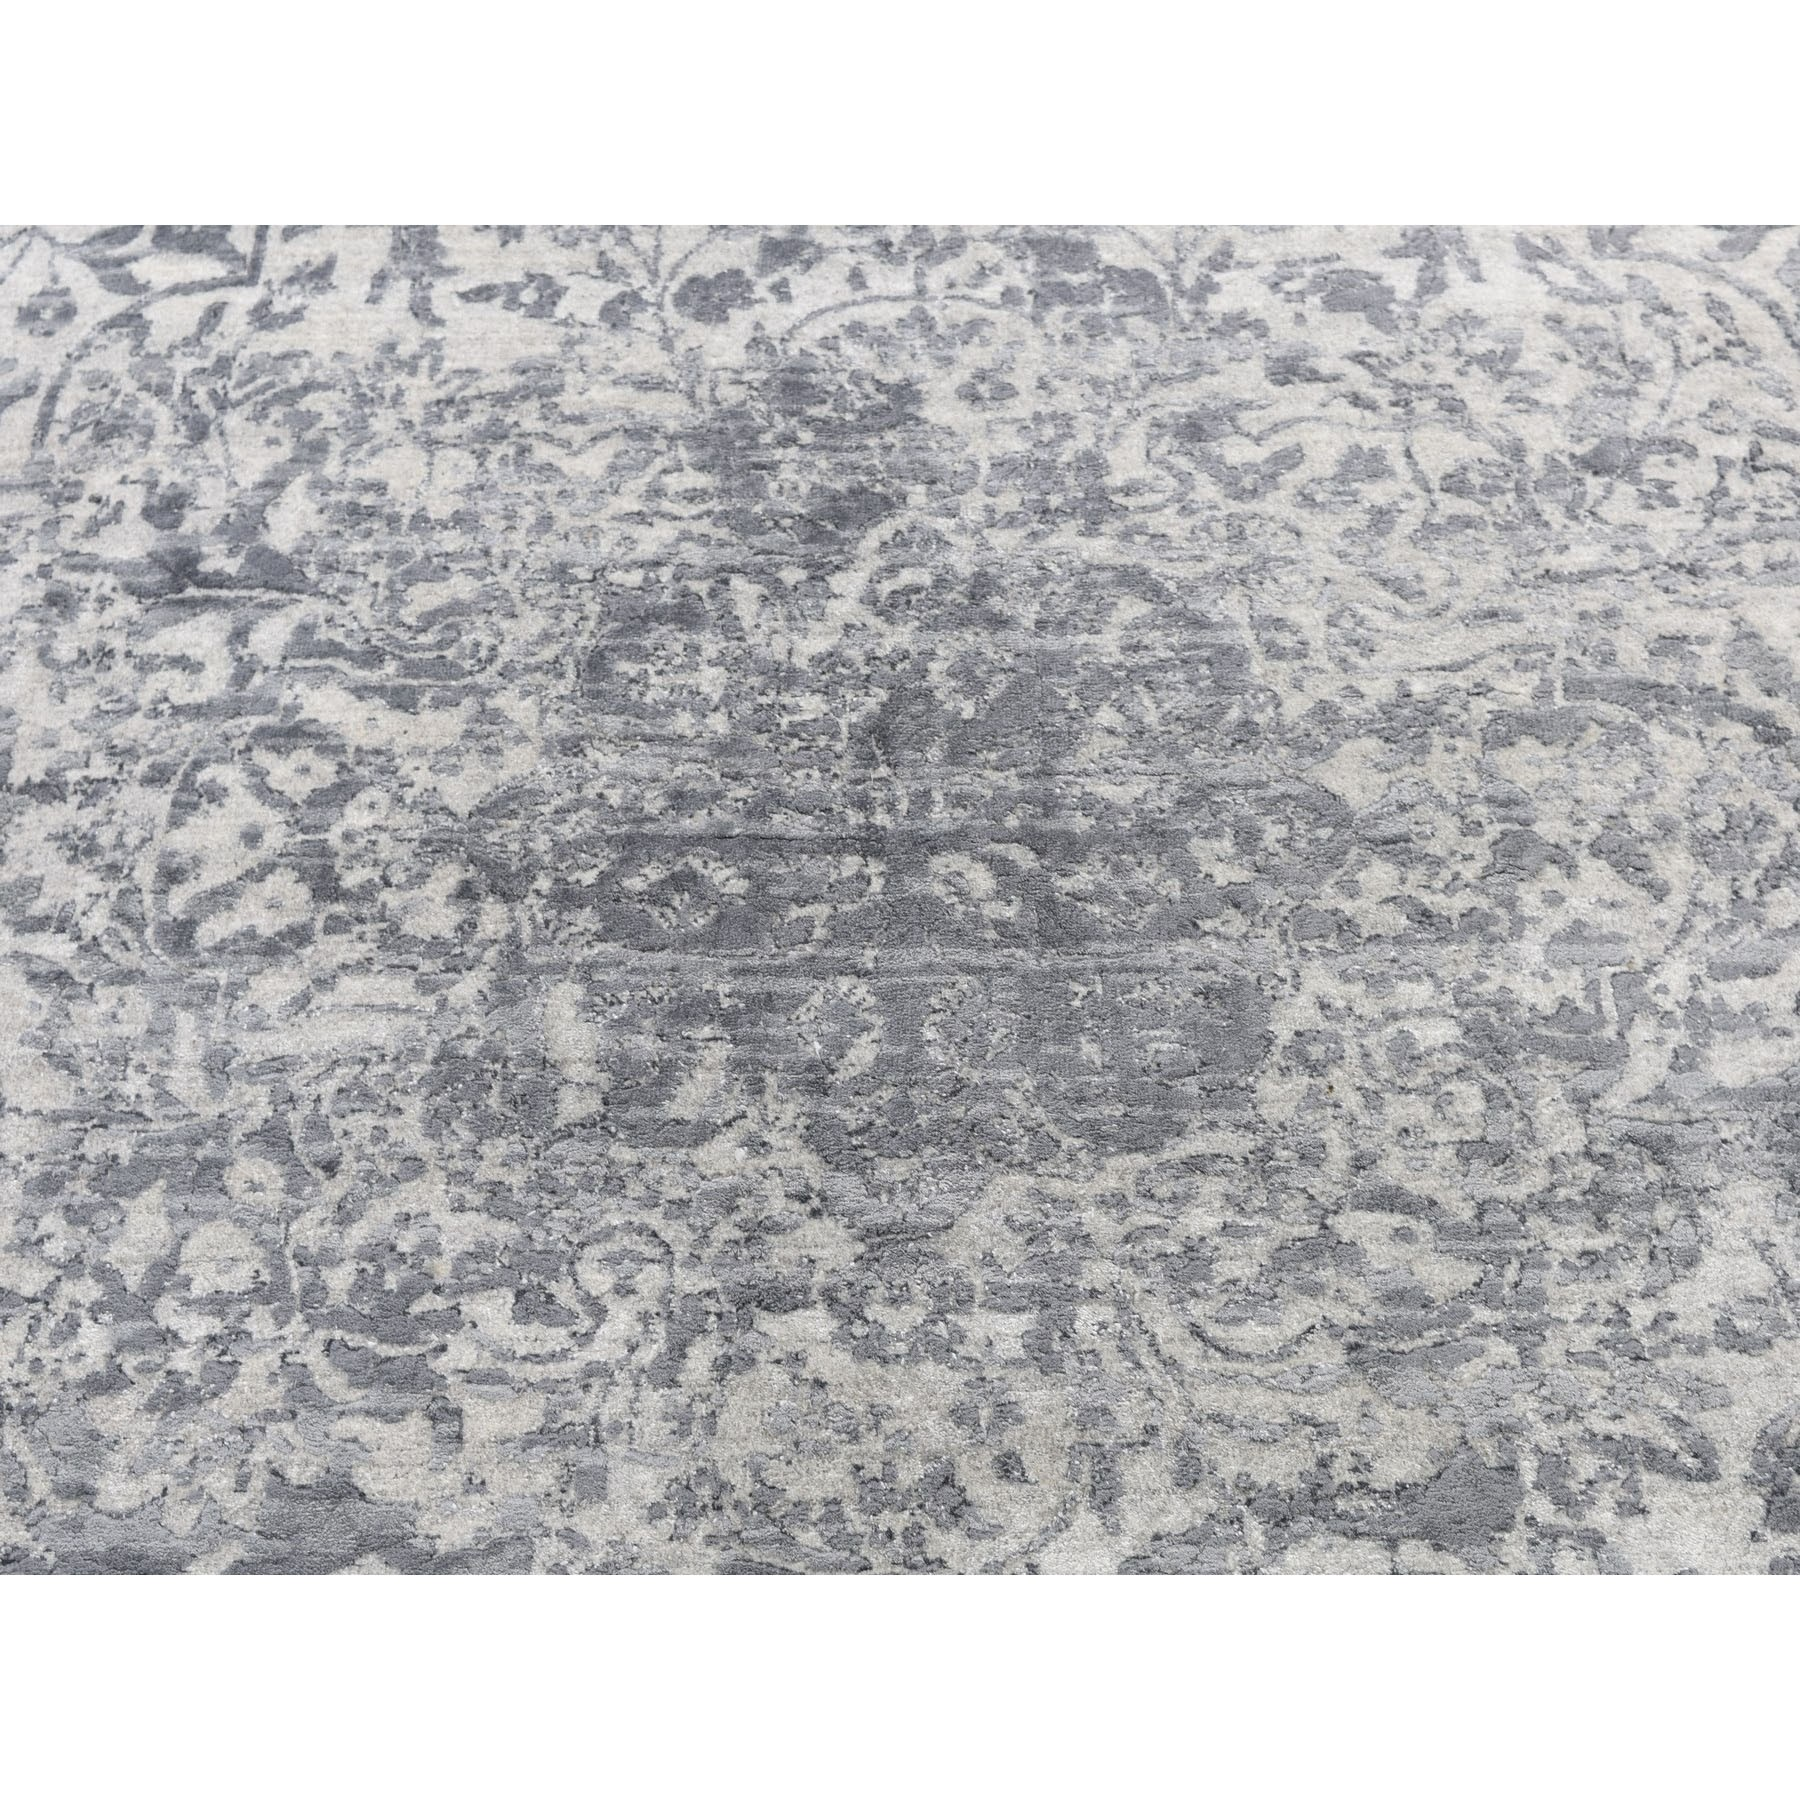 10'x14' Silver-Dark Gray Erased Persian Design Wool and Pure Silk Hand Knotted Oriental Rug